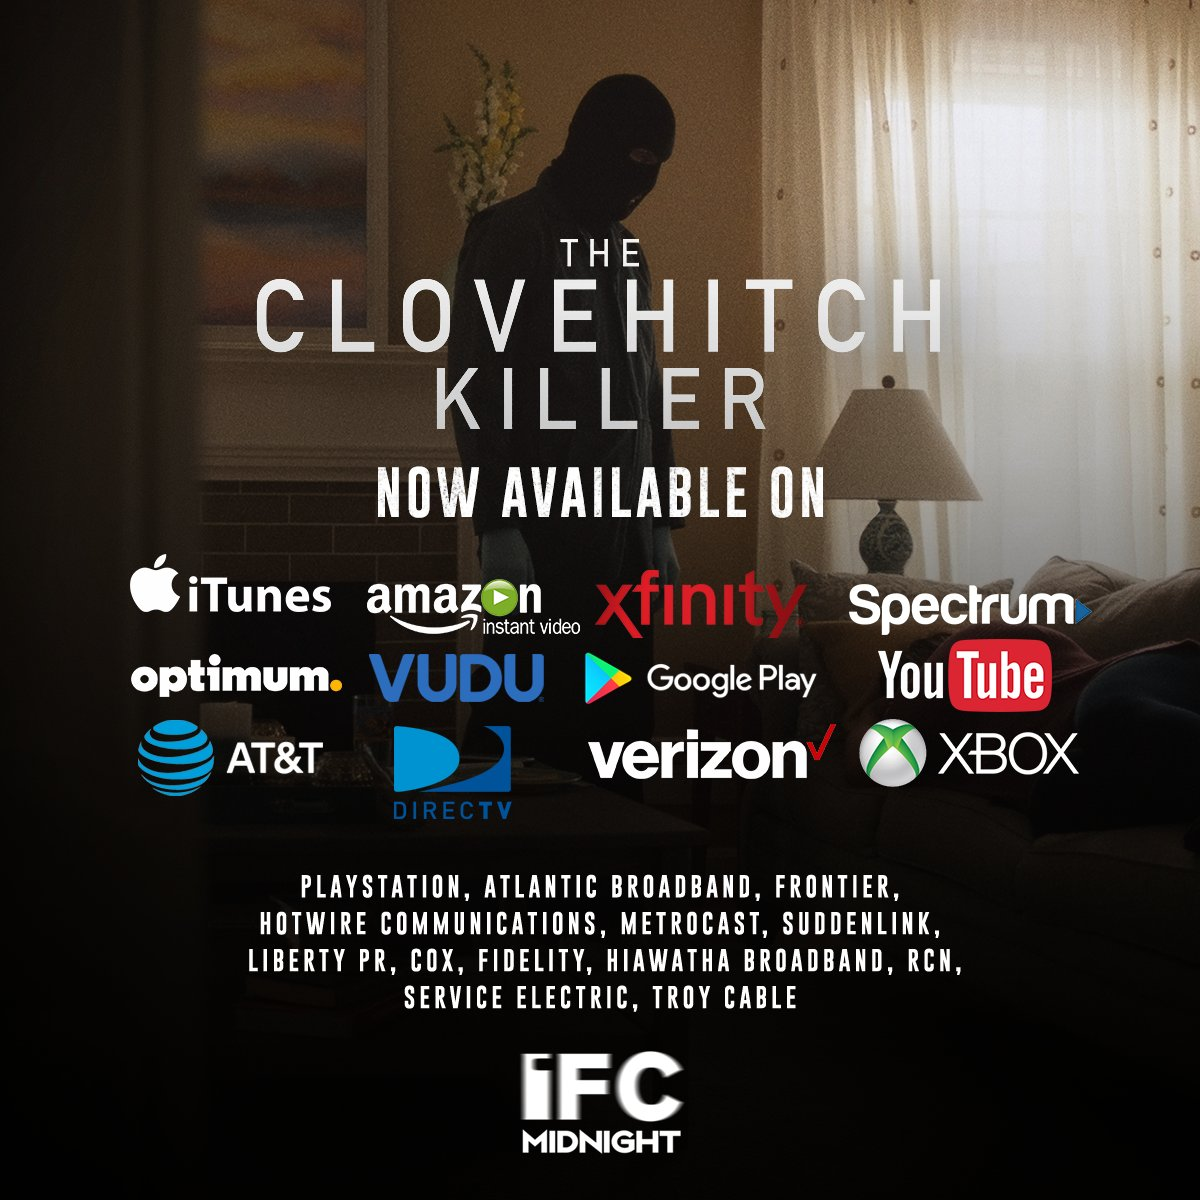 Here's where you can watch THE CLOVEHITCH KILLER on VOD tonight!